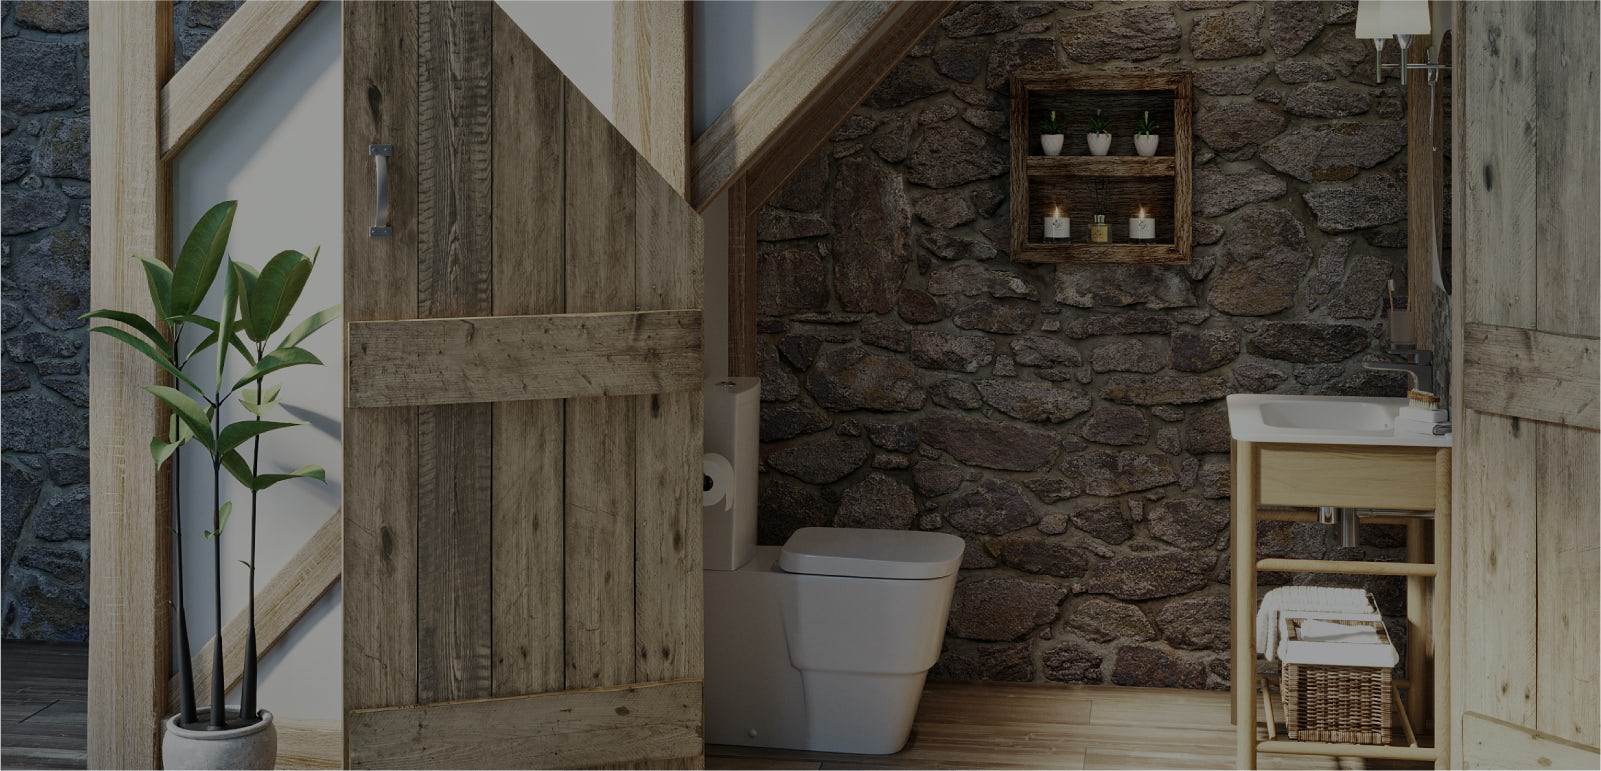 Bathroom ideas: Refined Rustic part 4